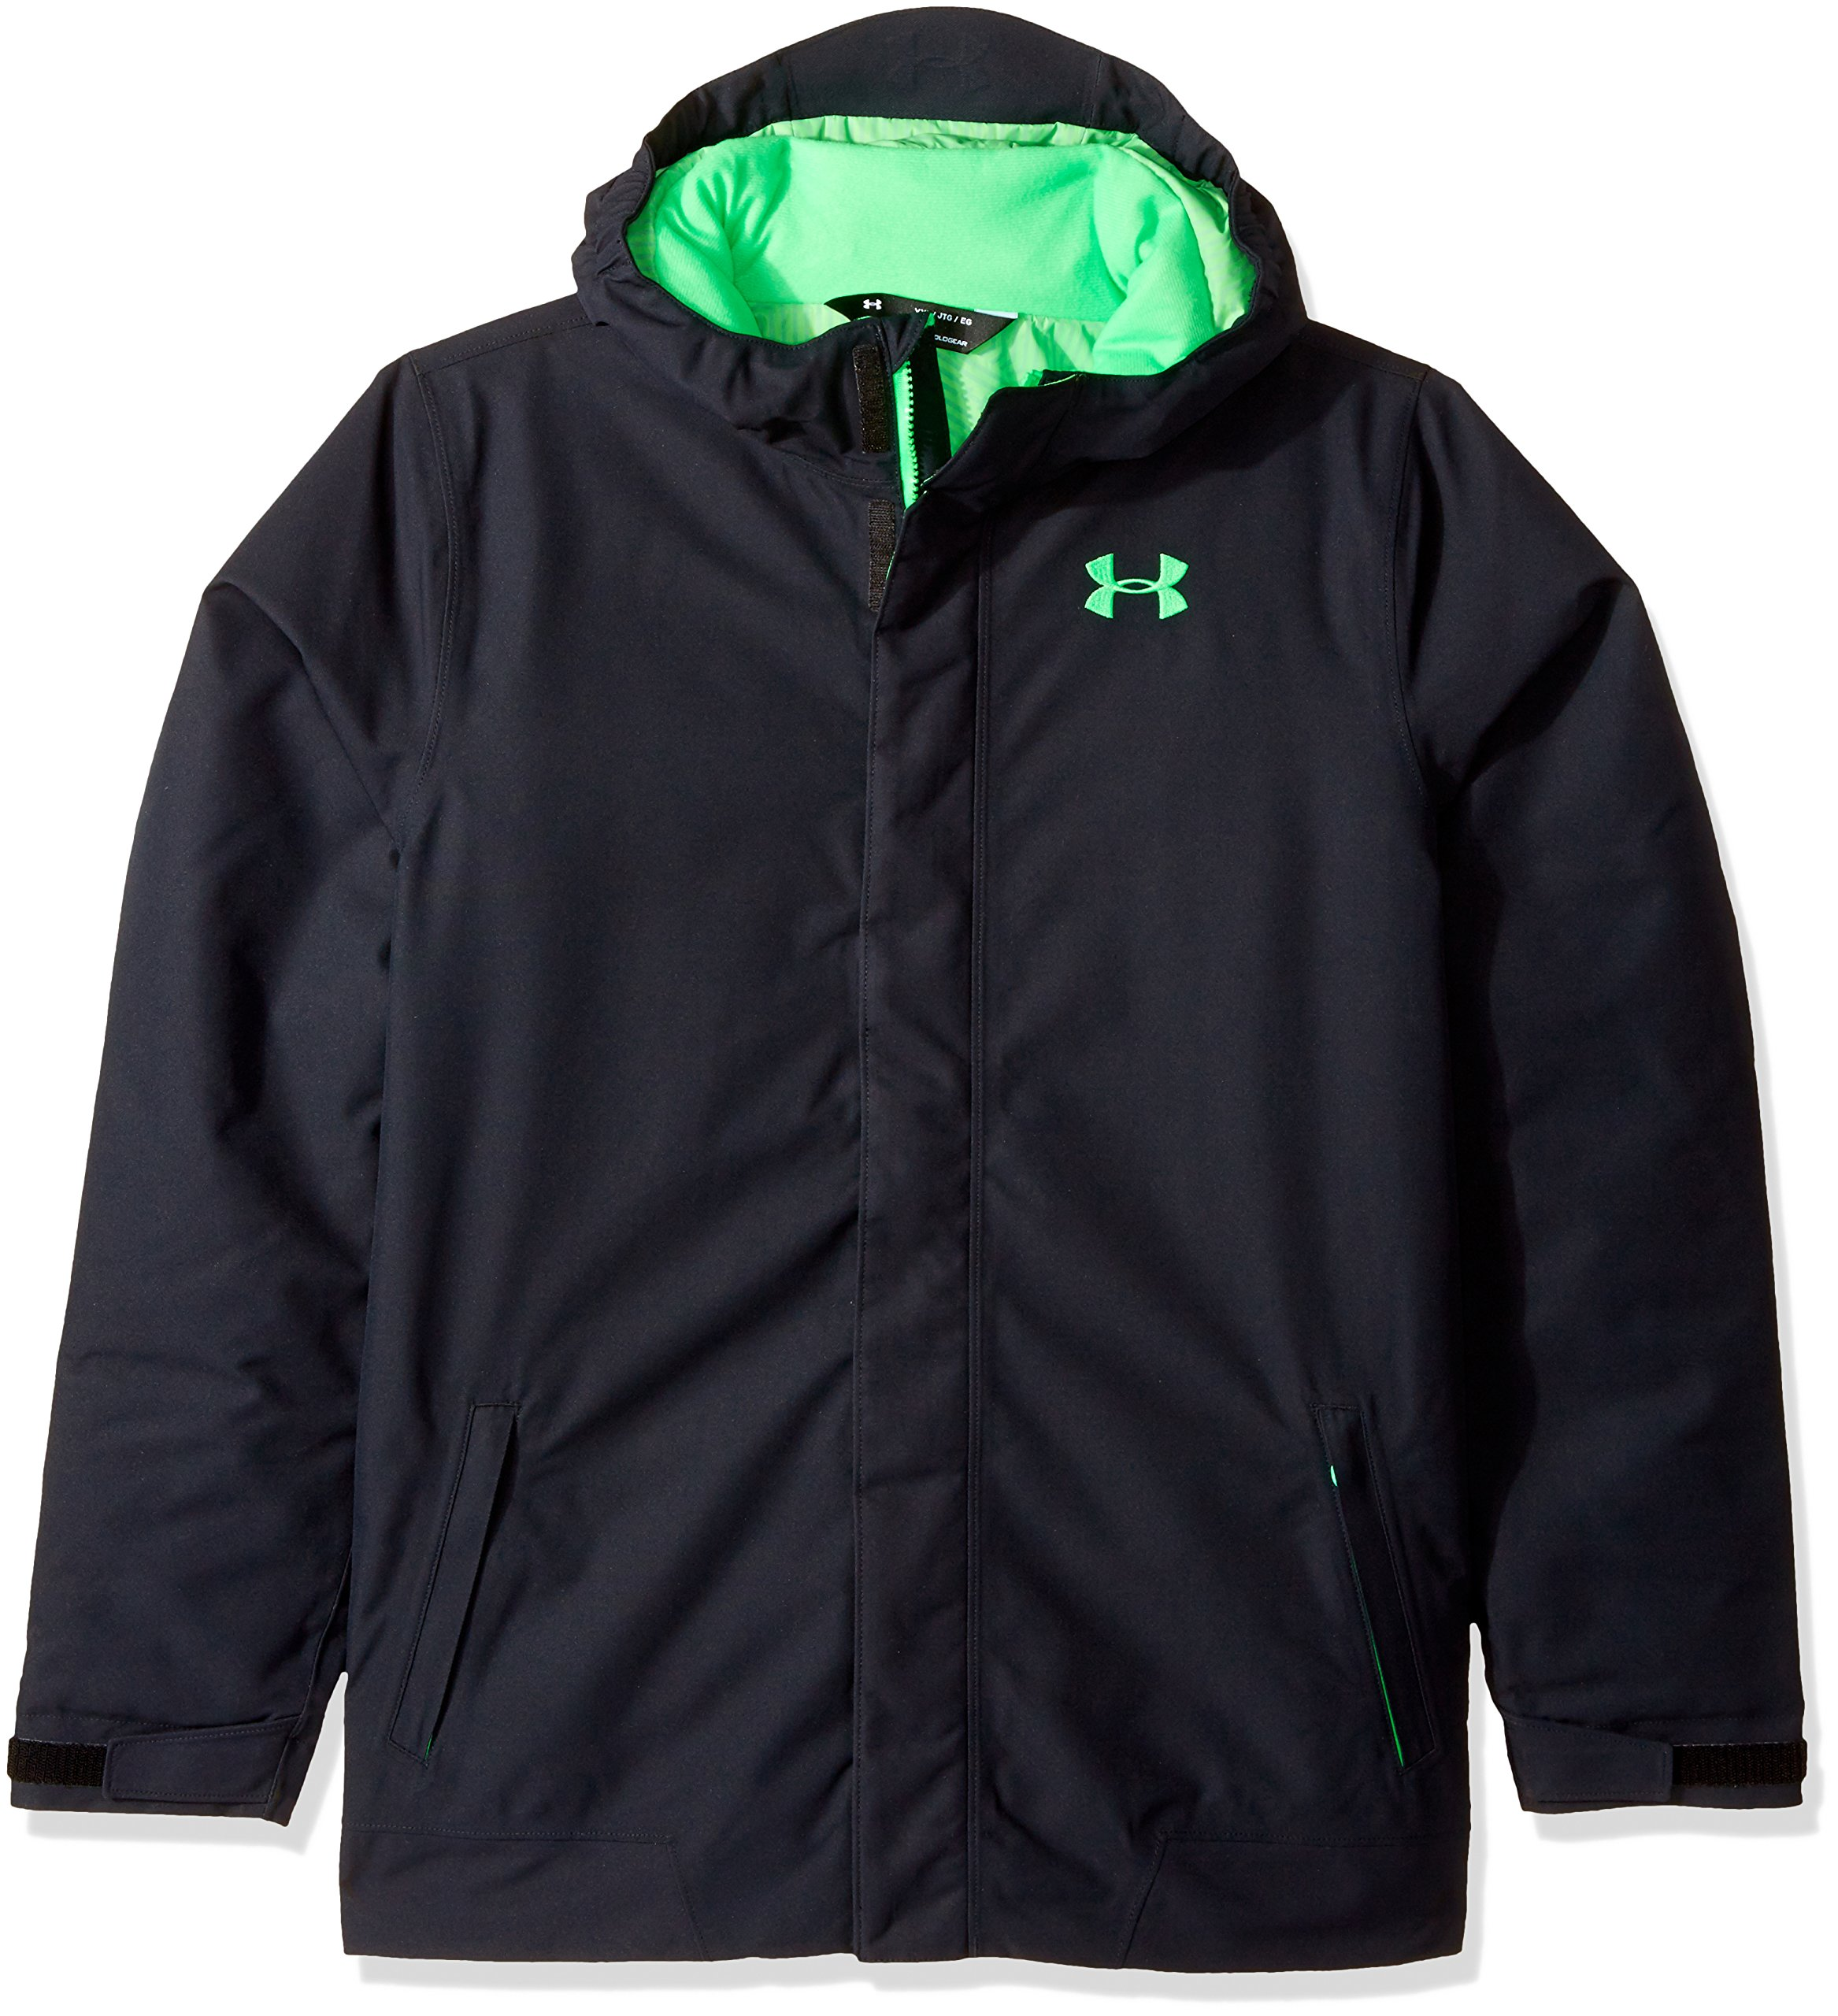 Under Armour Boys' Storm Powerline Insulated Jacket, Black/Lime Twist, Youth Medium by Under Armour